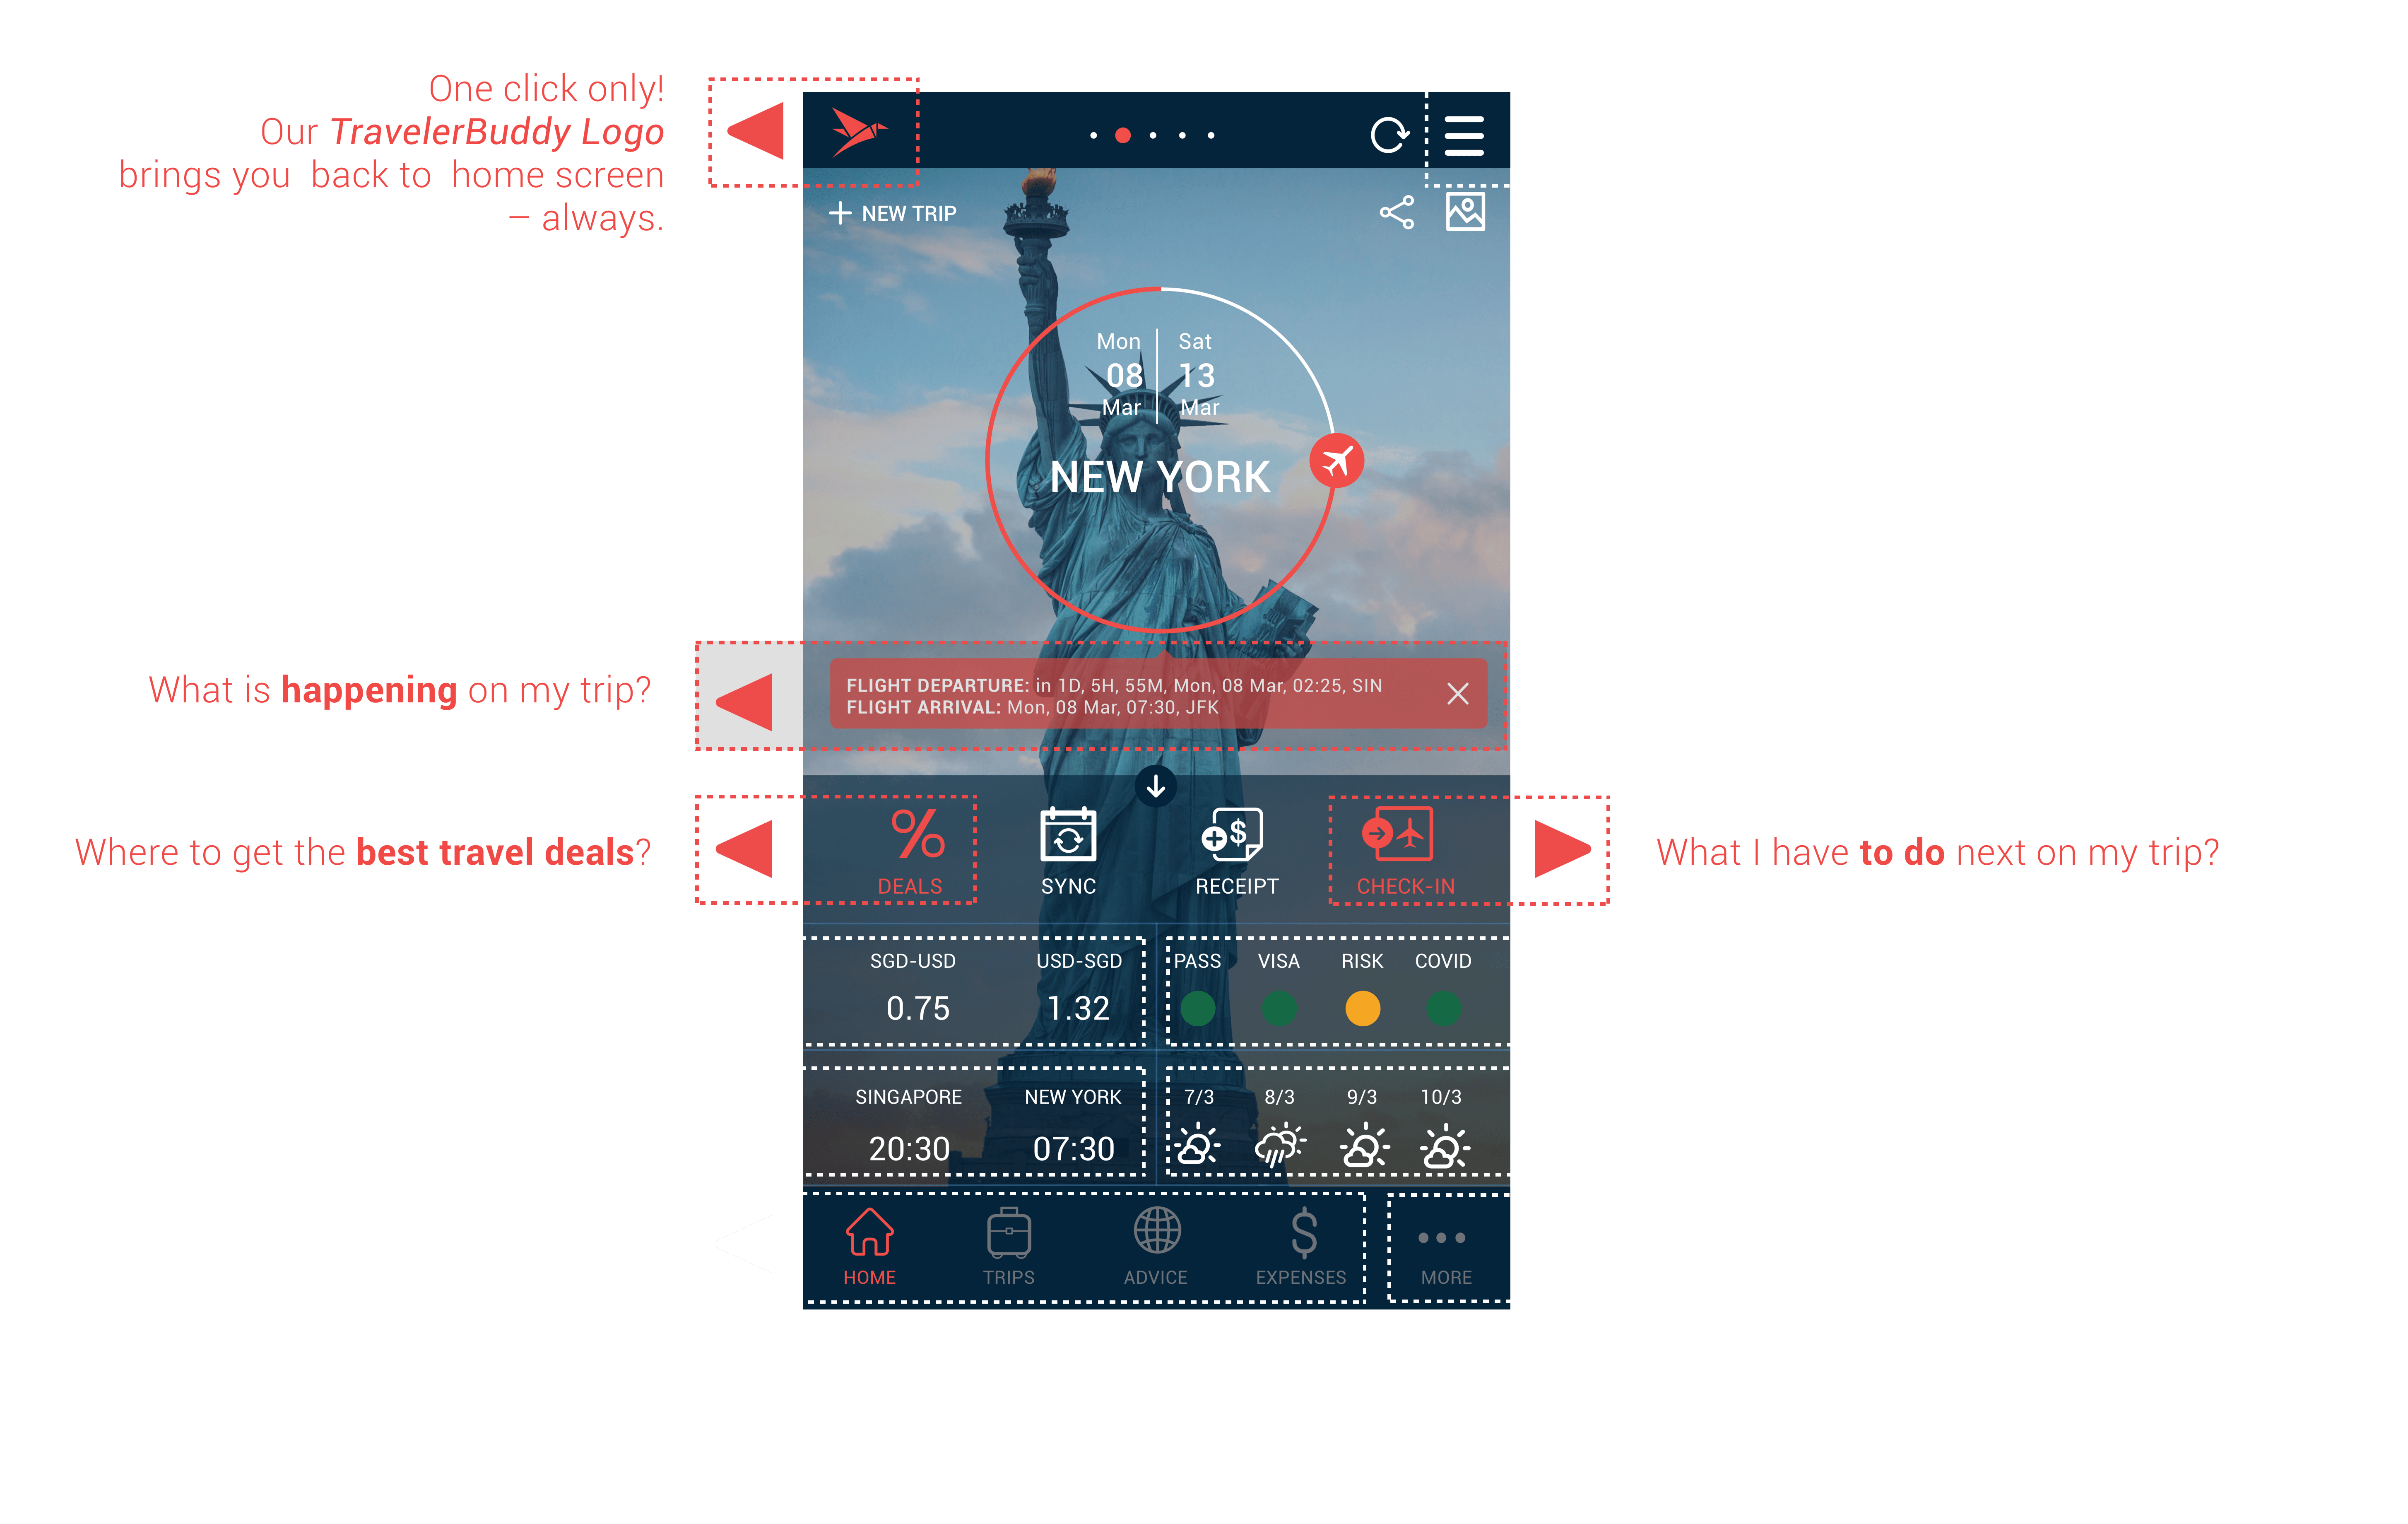 travelerbuddy new app homescreen